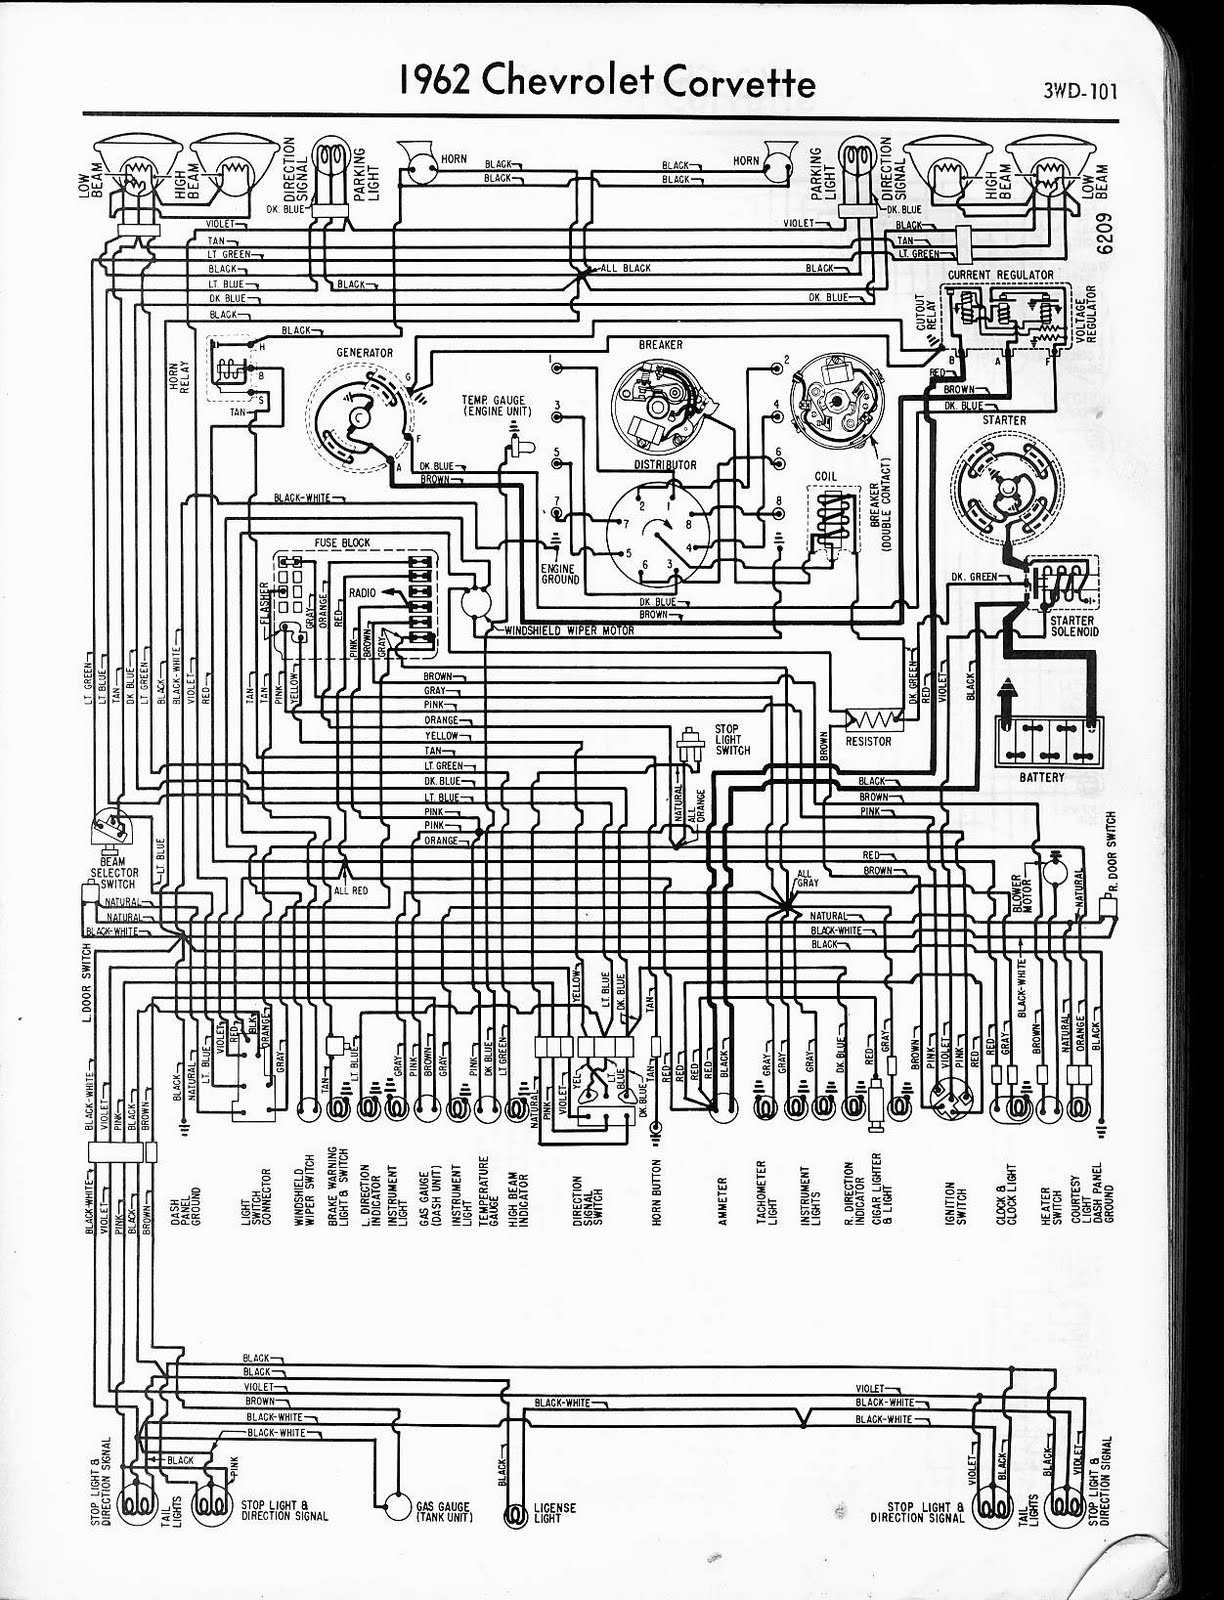 Wiring Diagram Electrical Panel Simple Guide About House Symbols Pdf Car Free Auto 1962 Chevrolet Corvette For